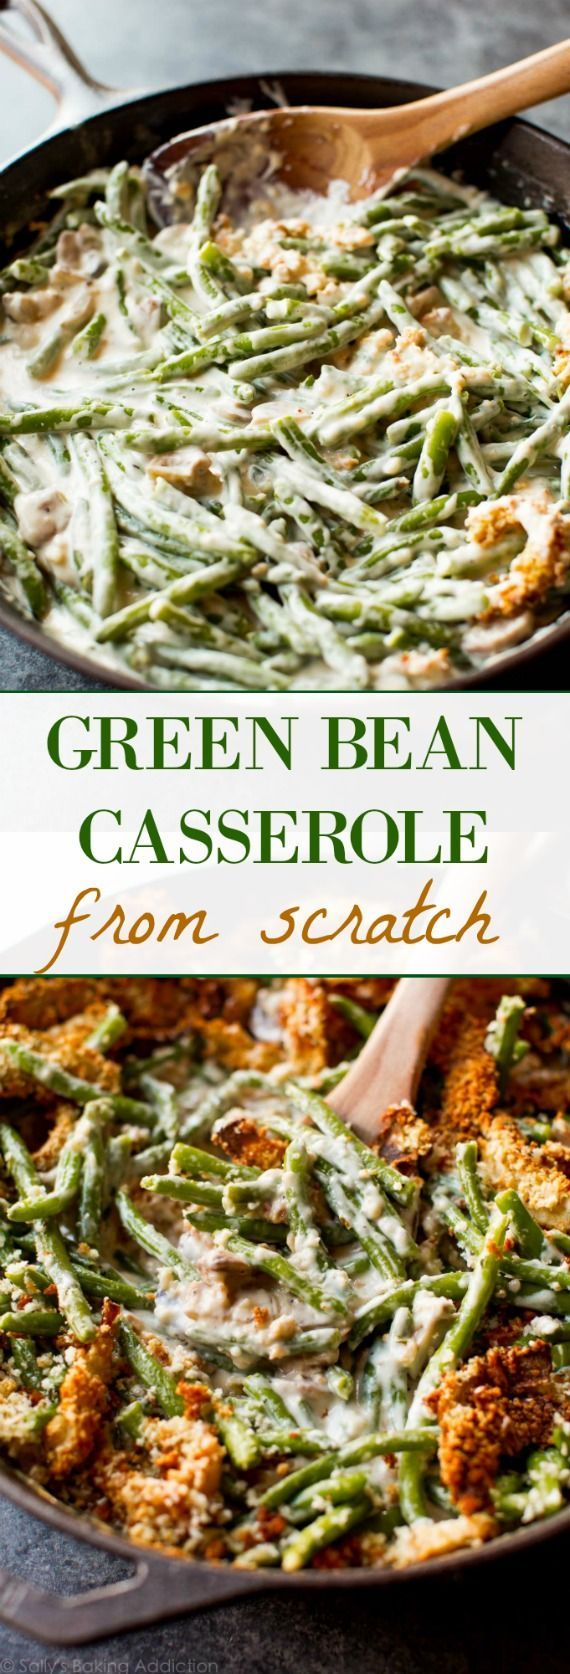 Creamy, comforting green bean casserole made completely from scratch! Easy Thanksgiving side dish. Recipe on sallysbakingaddic...